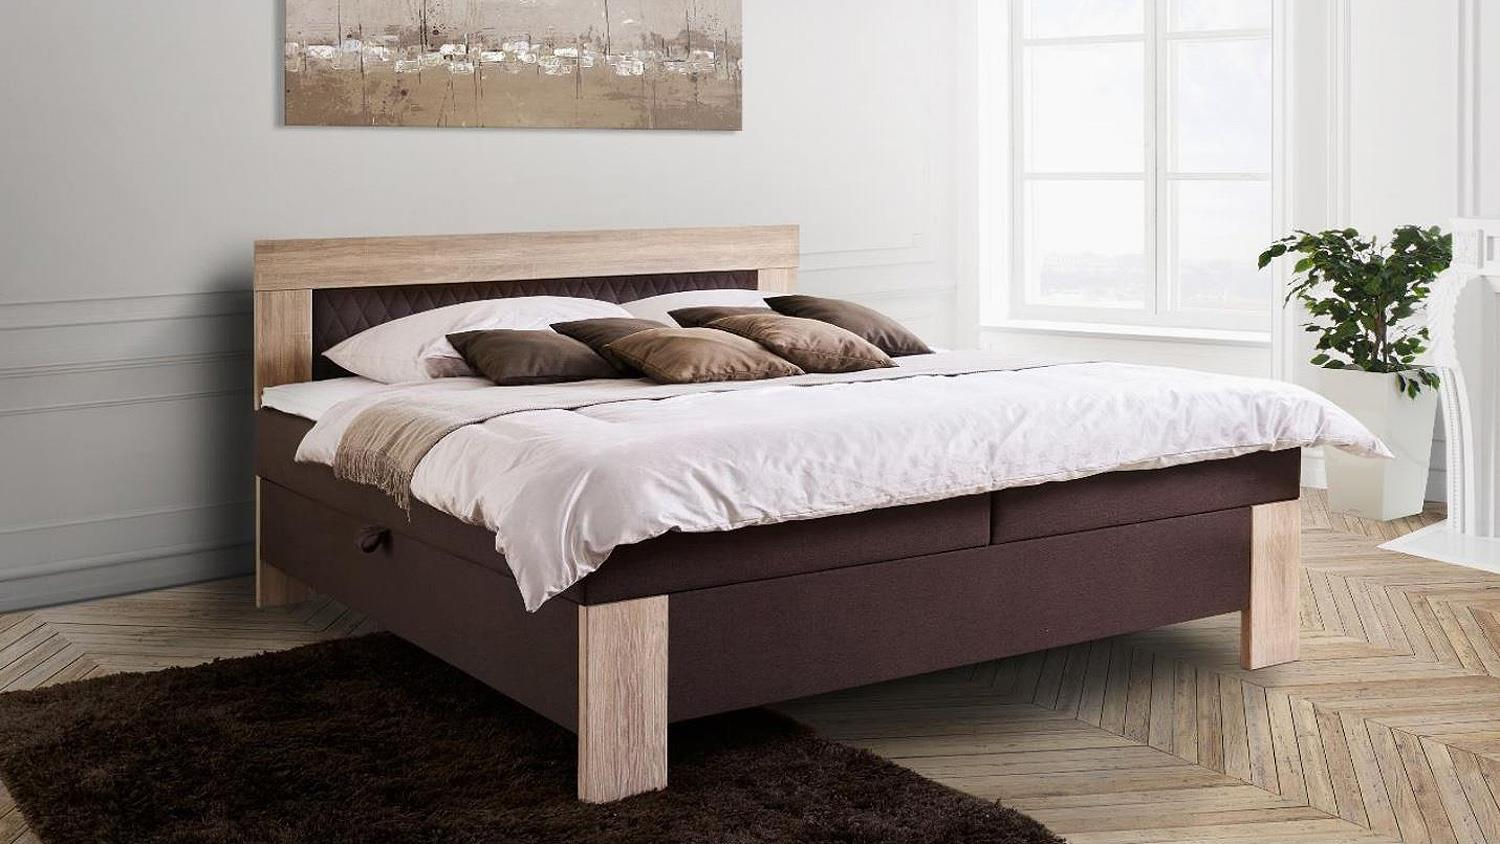 boxspringbett kiel braun und sonoma eiche 180x200 cm. Black Bedroom Furniture Sets. Home Design Ideas